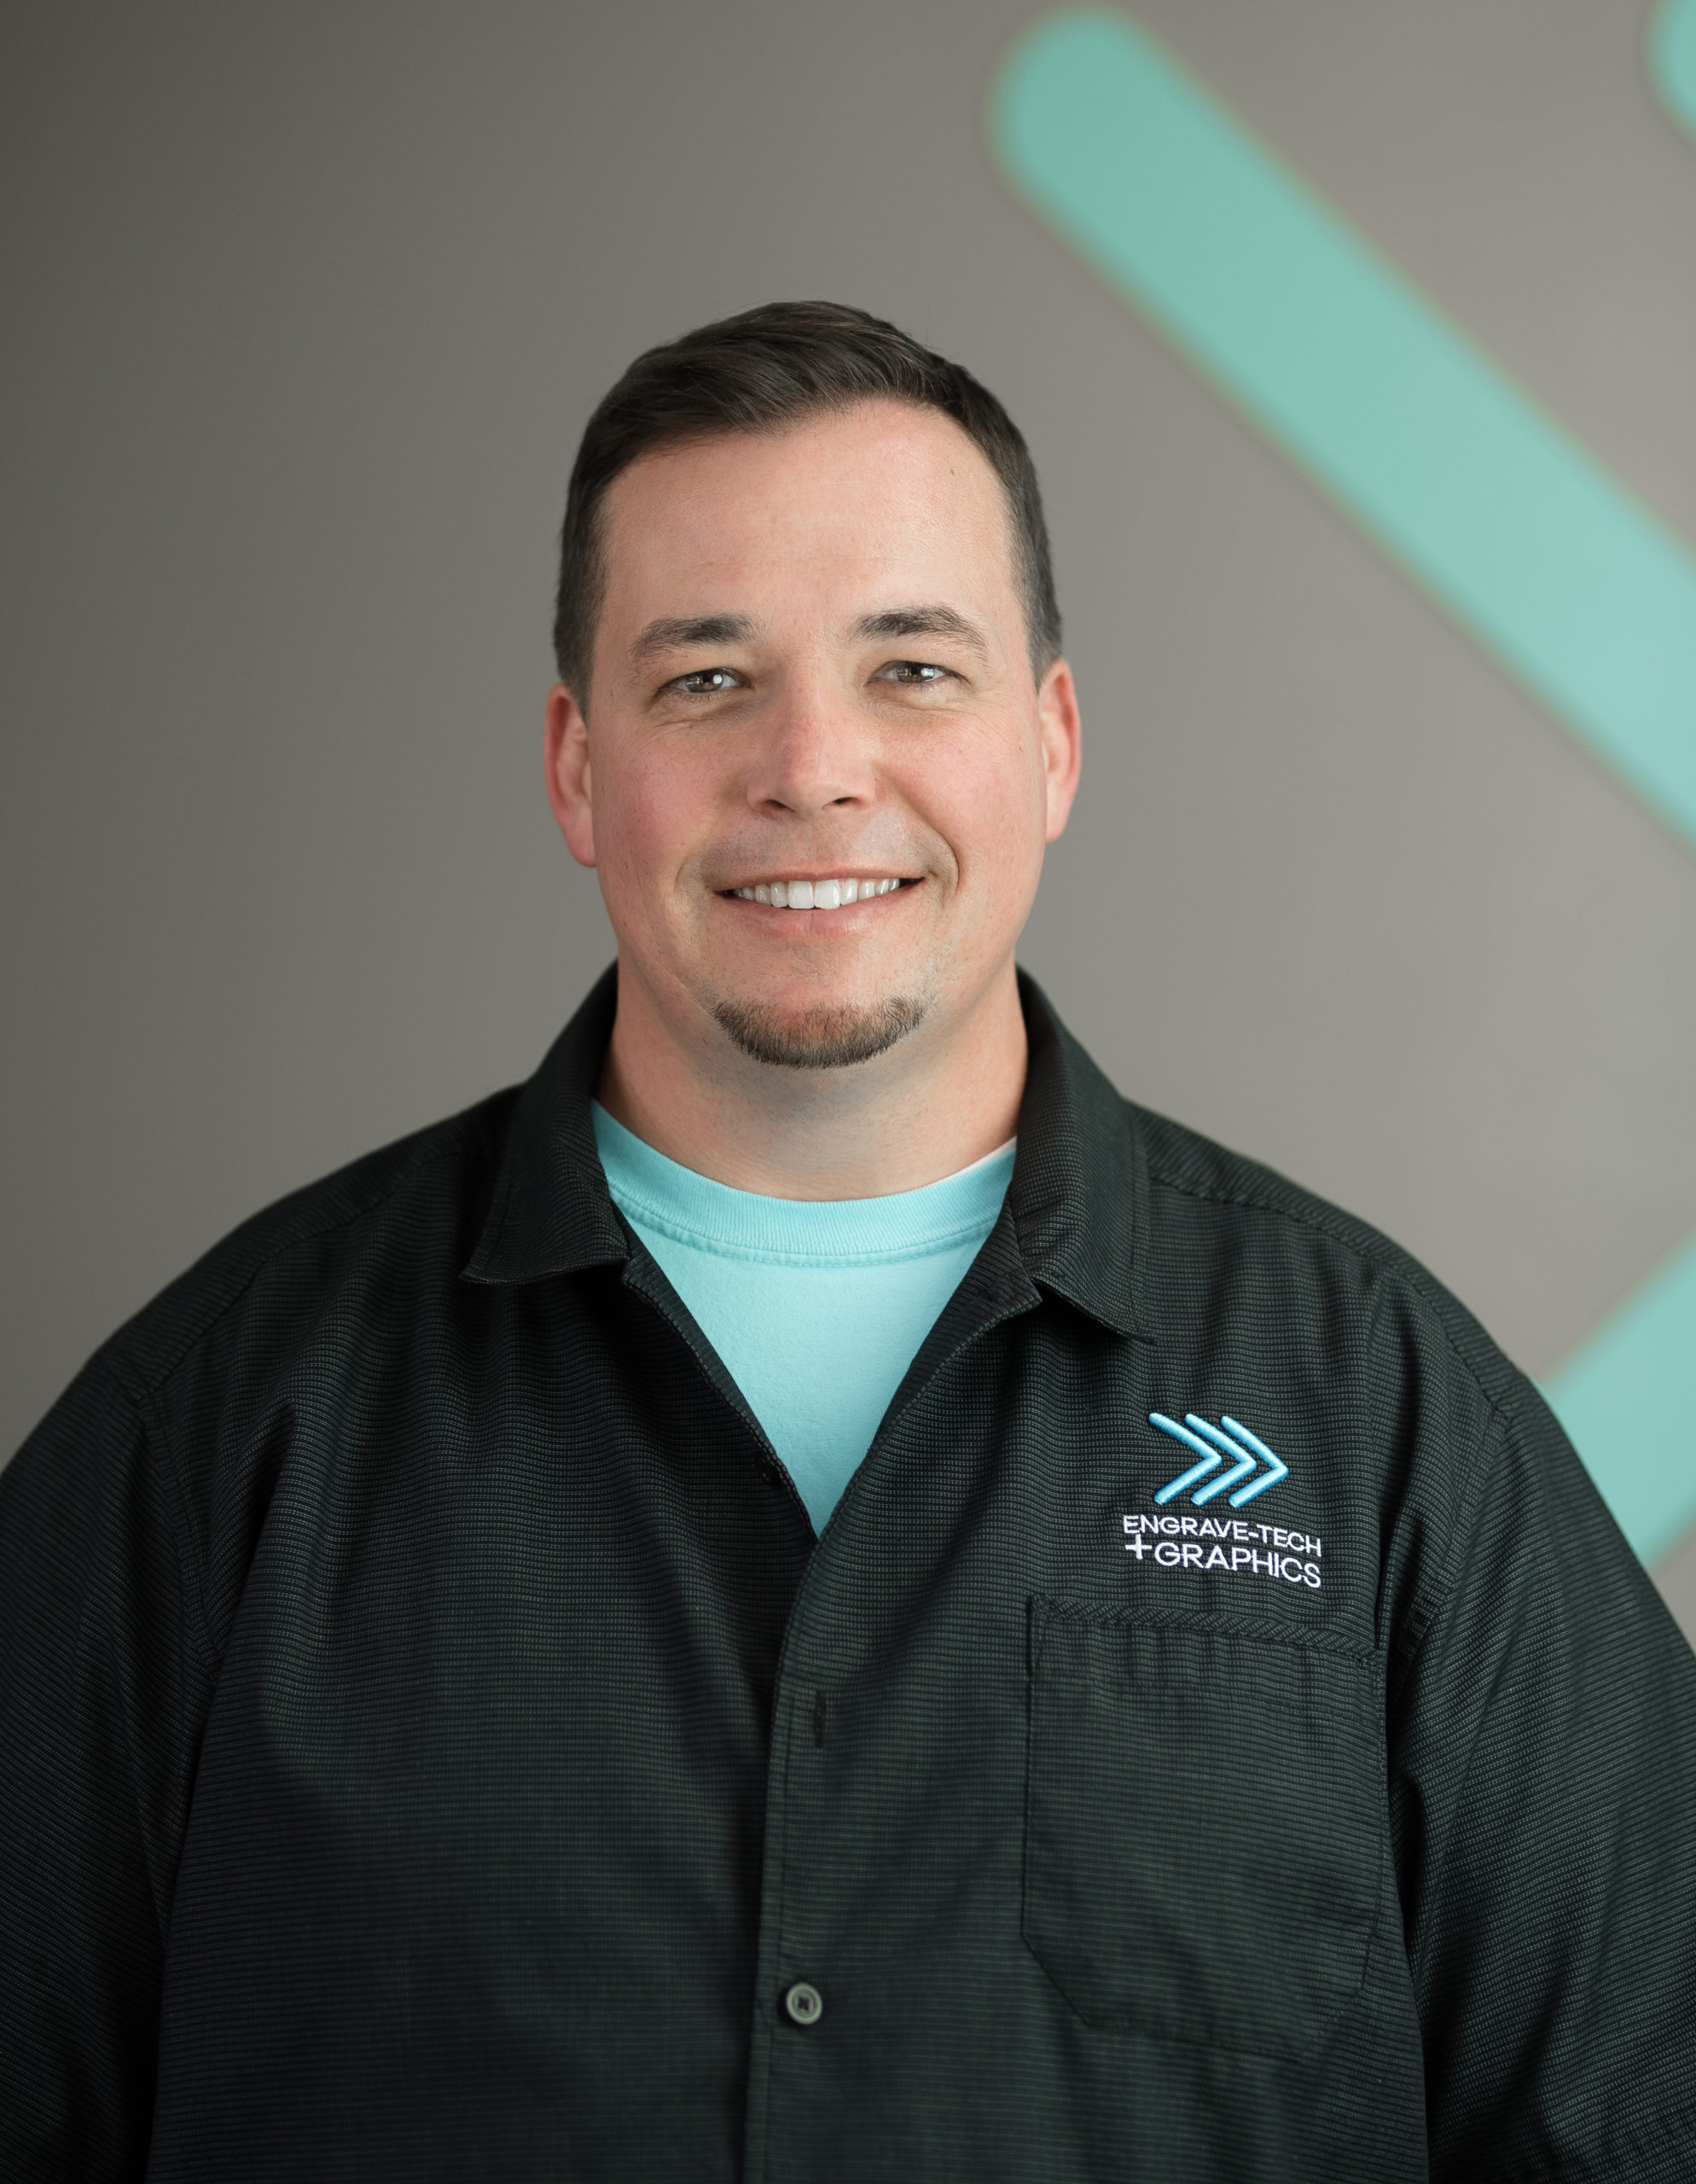 Russell Anthony, Lead Installer of Engrave-Tech & Graphics